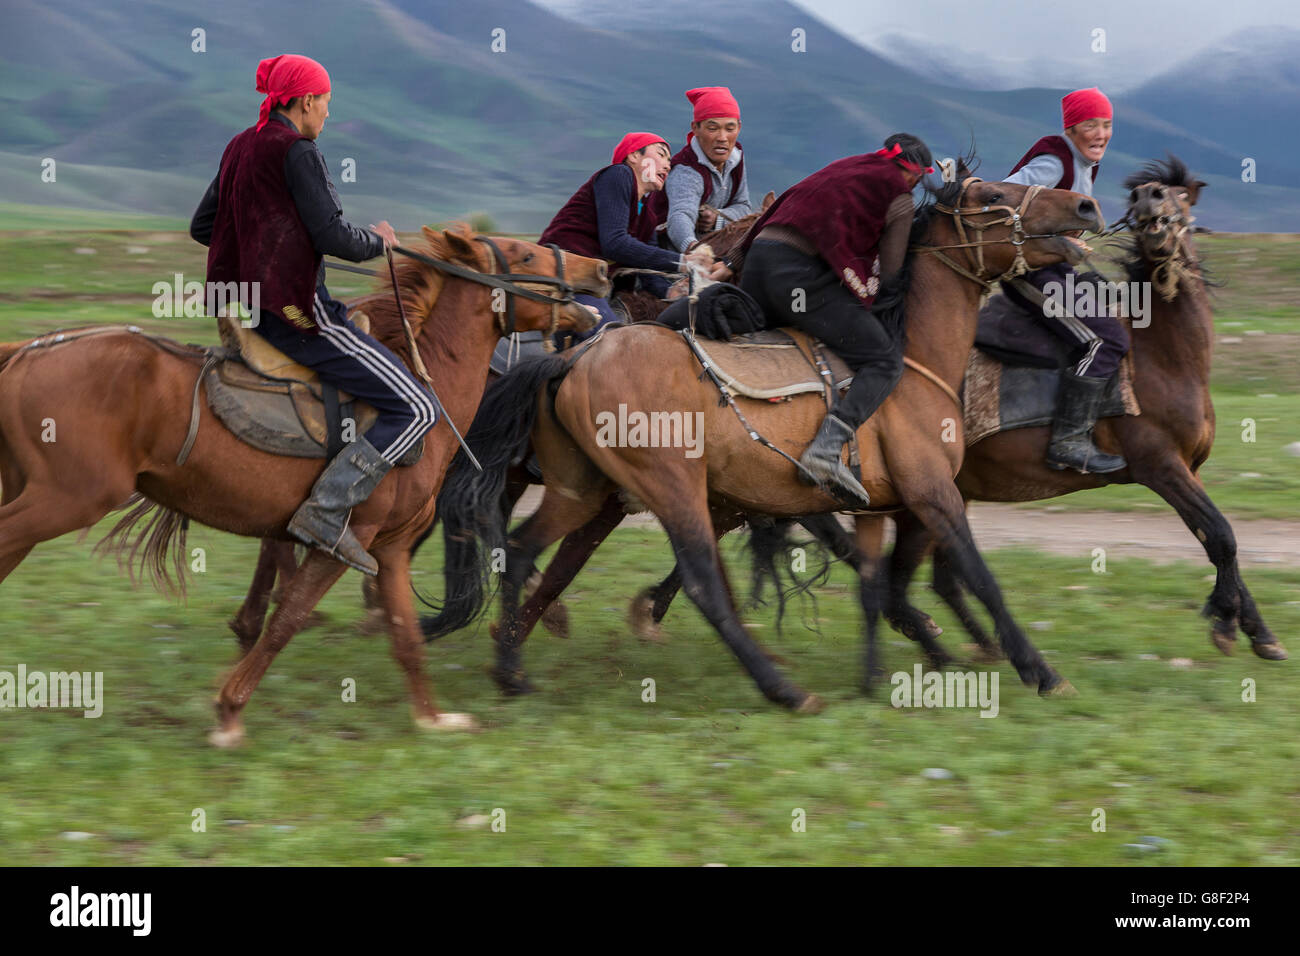 Traditional nomadic horse games of Ulak Tartysh. - Stock Image